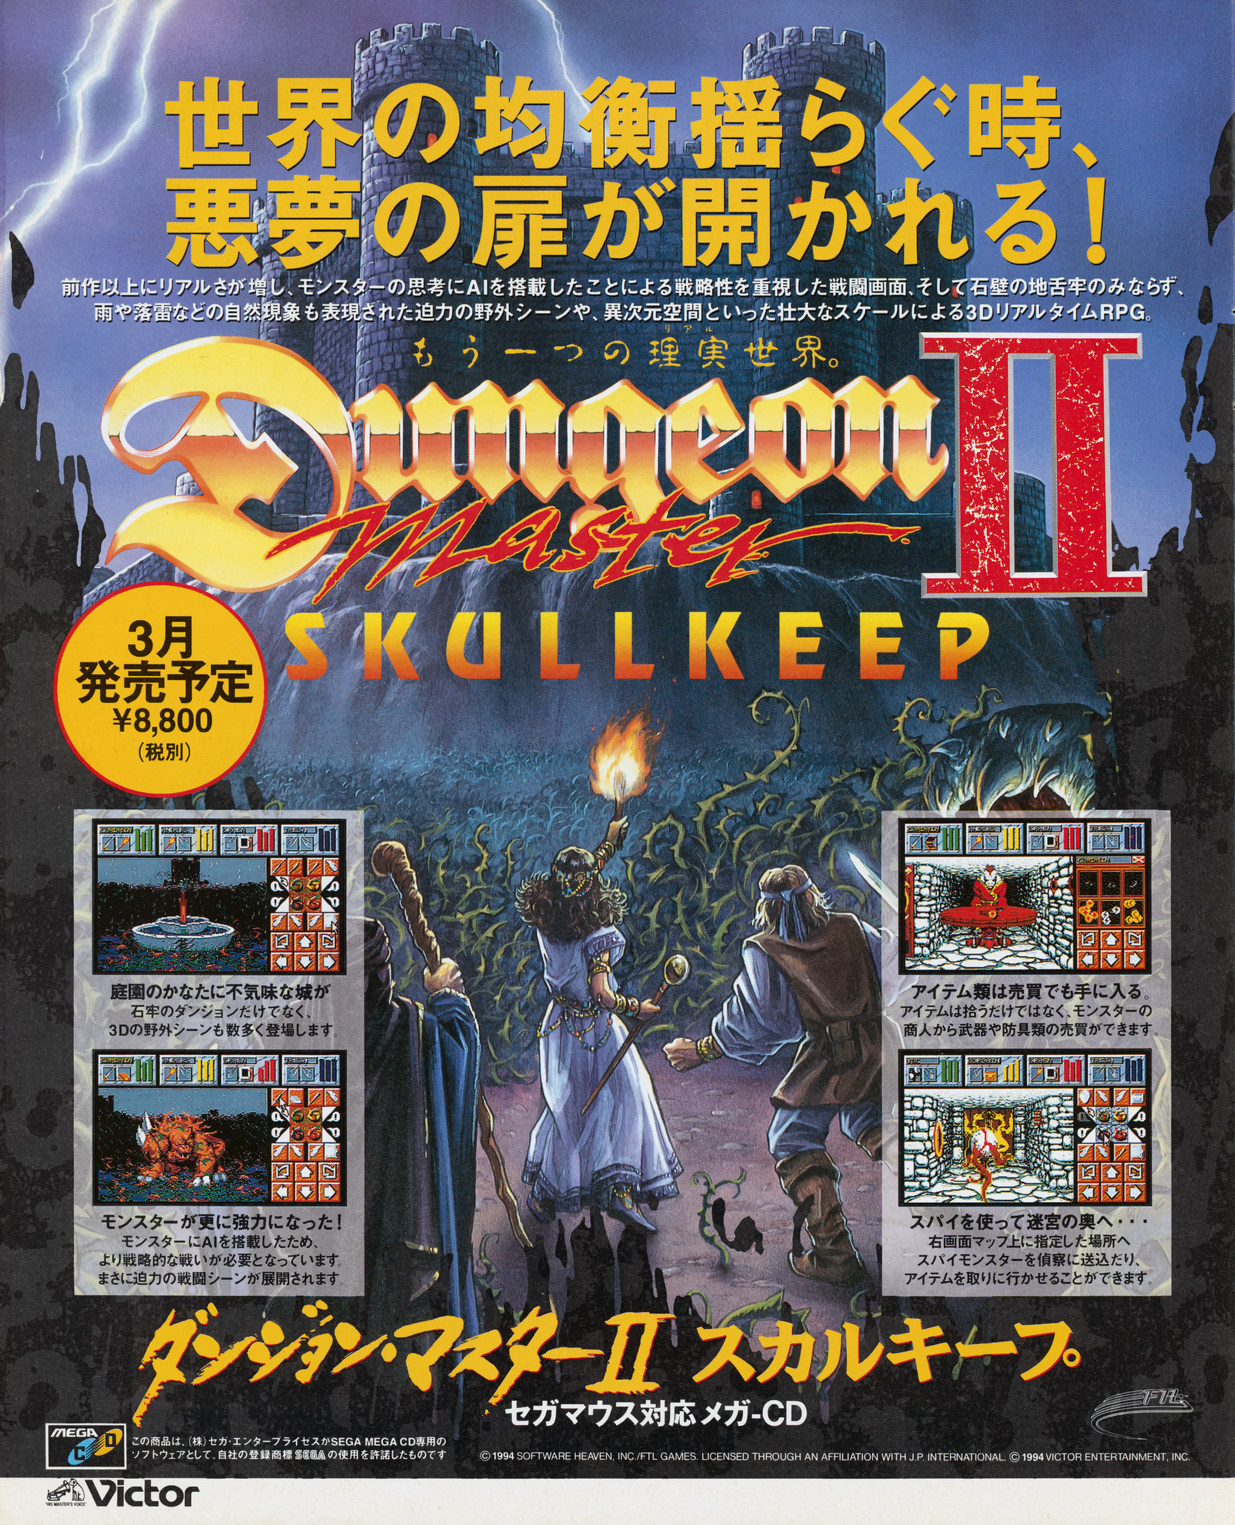 Dungeon Master II for Mega CD Advertisement published in Japanese magazine 'Beep! MegaDrive', March 1994, Page 6